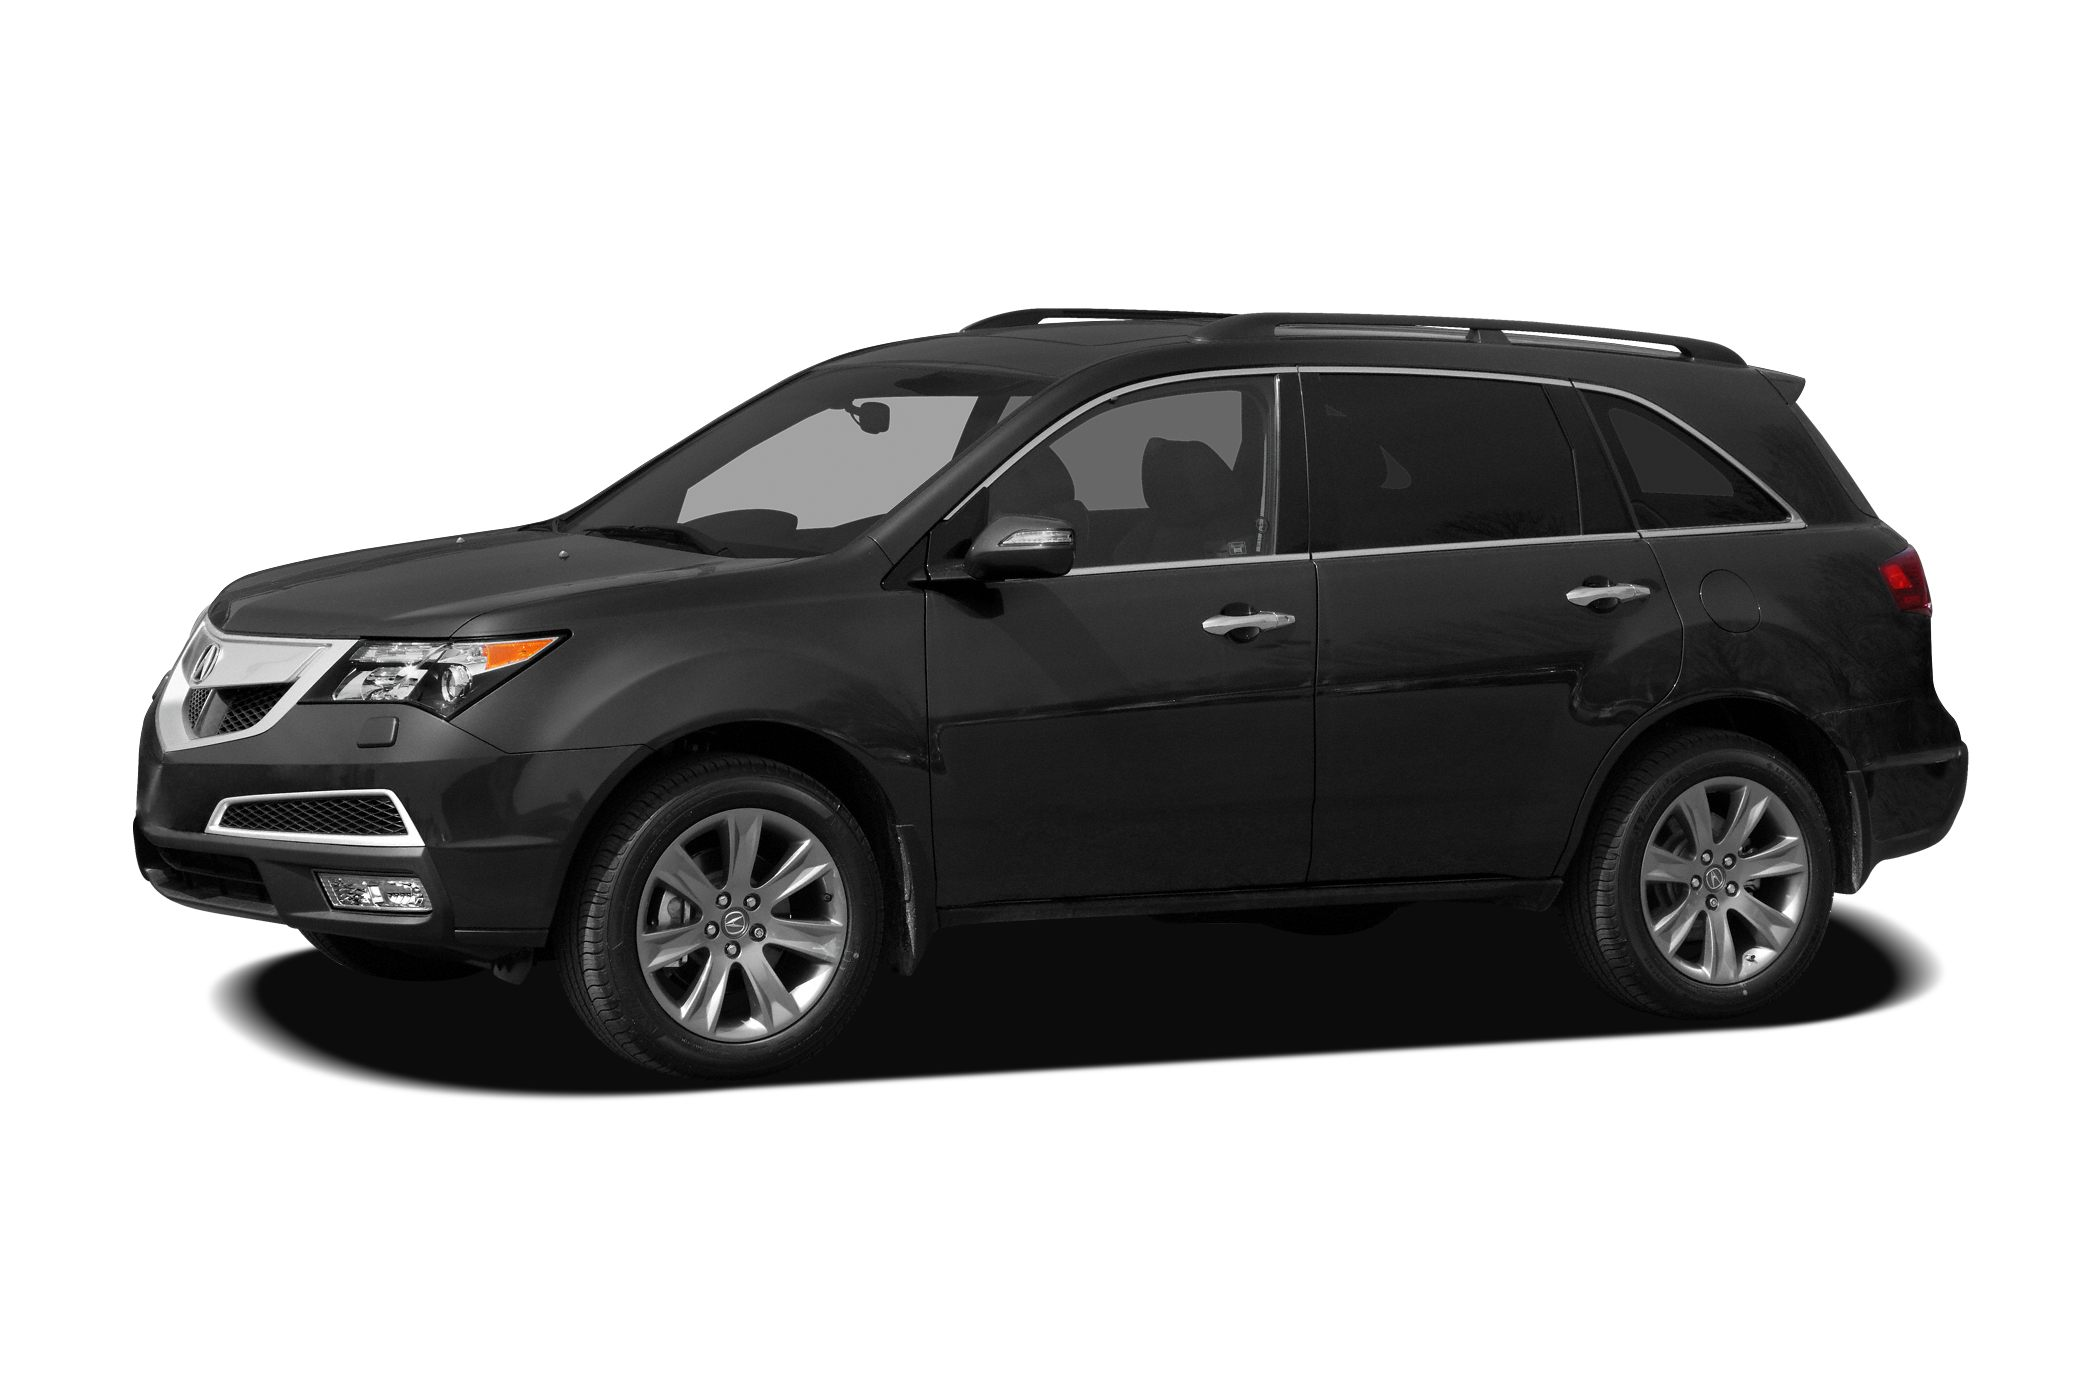 2010 Acura Mdx Pricing And Specs